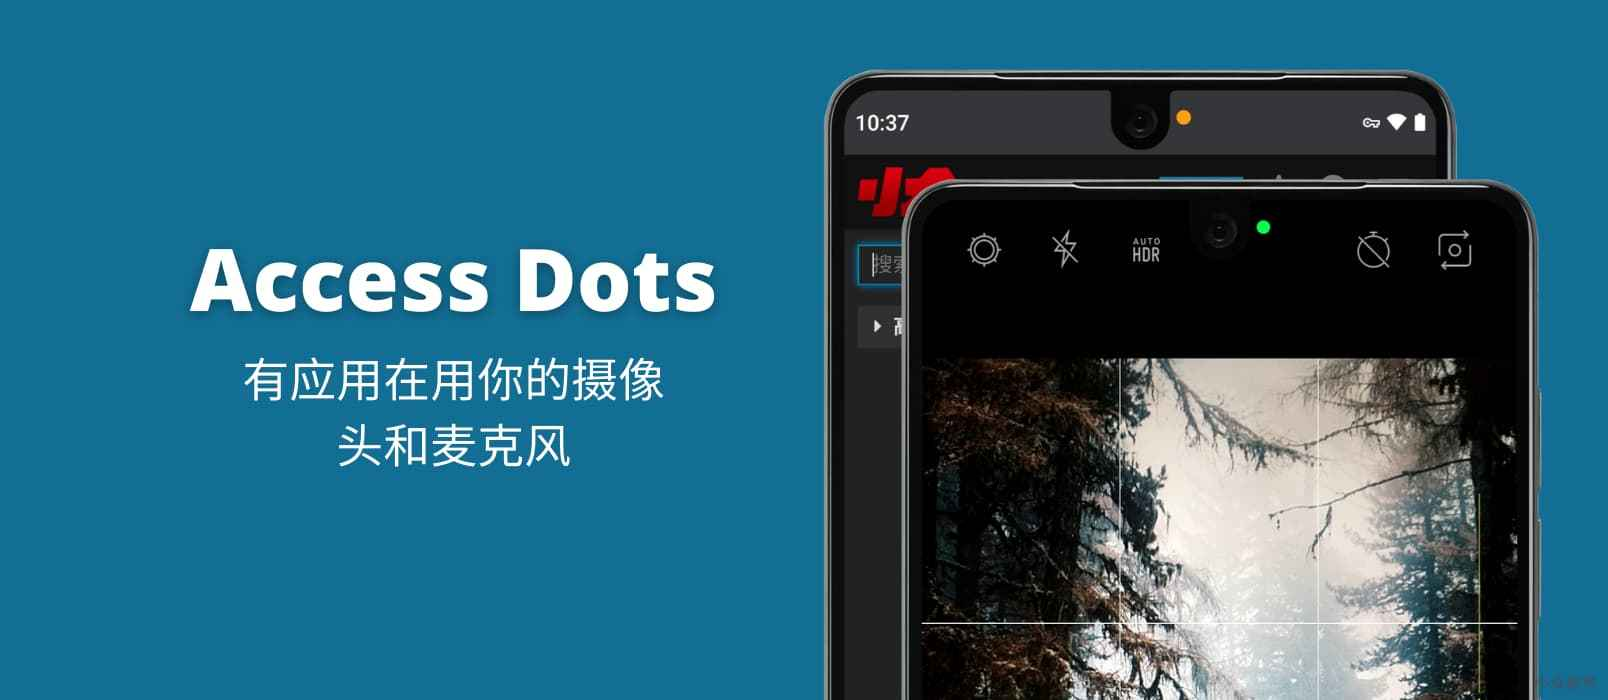 Access Dots -  实时提醒,有应用正在用你的摄像头和麦克风[Android]